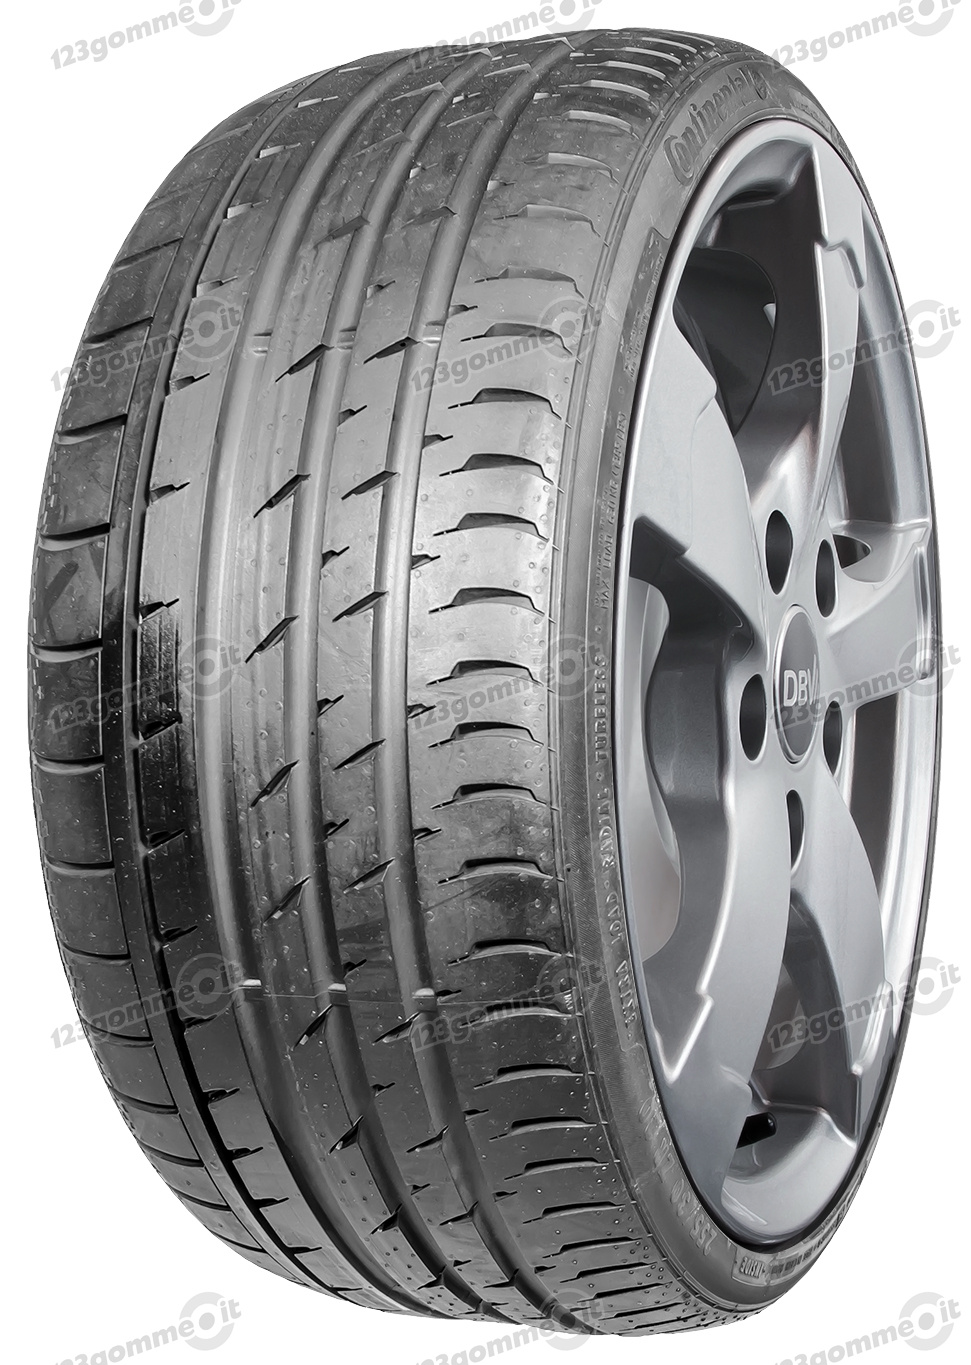 235/40 R18 91Y SportContact 3 MO FR  SportContact 3 MO FR